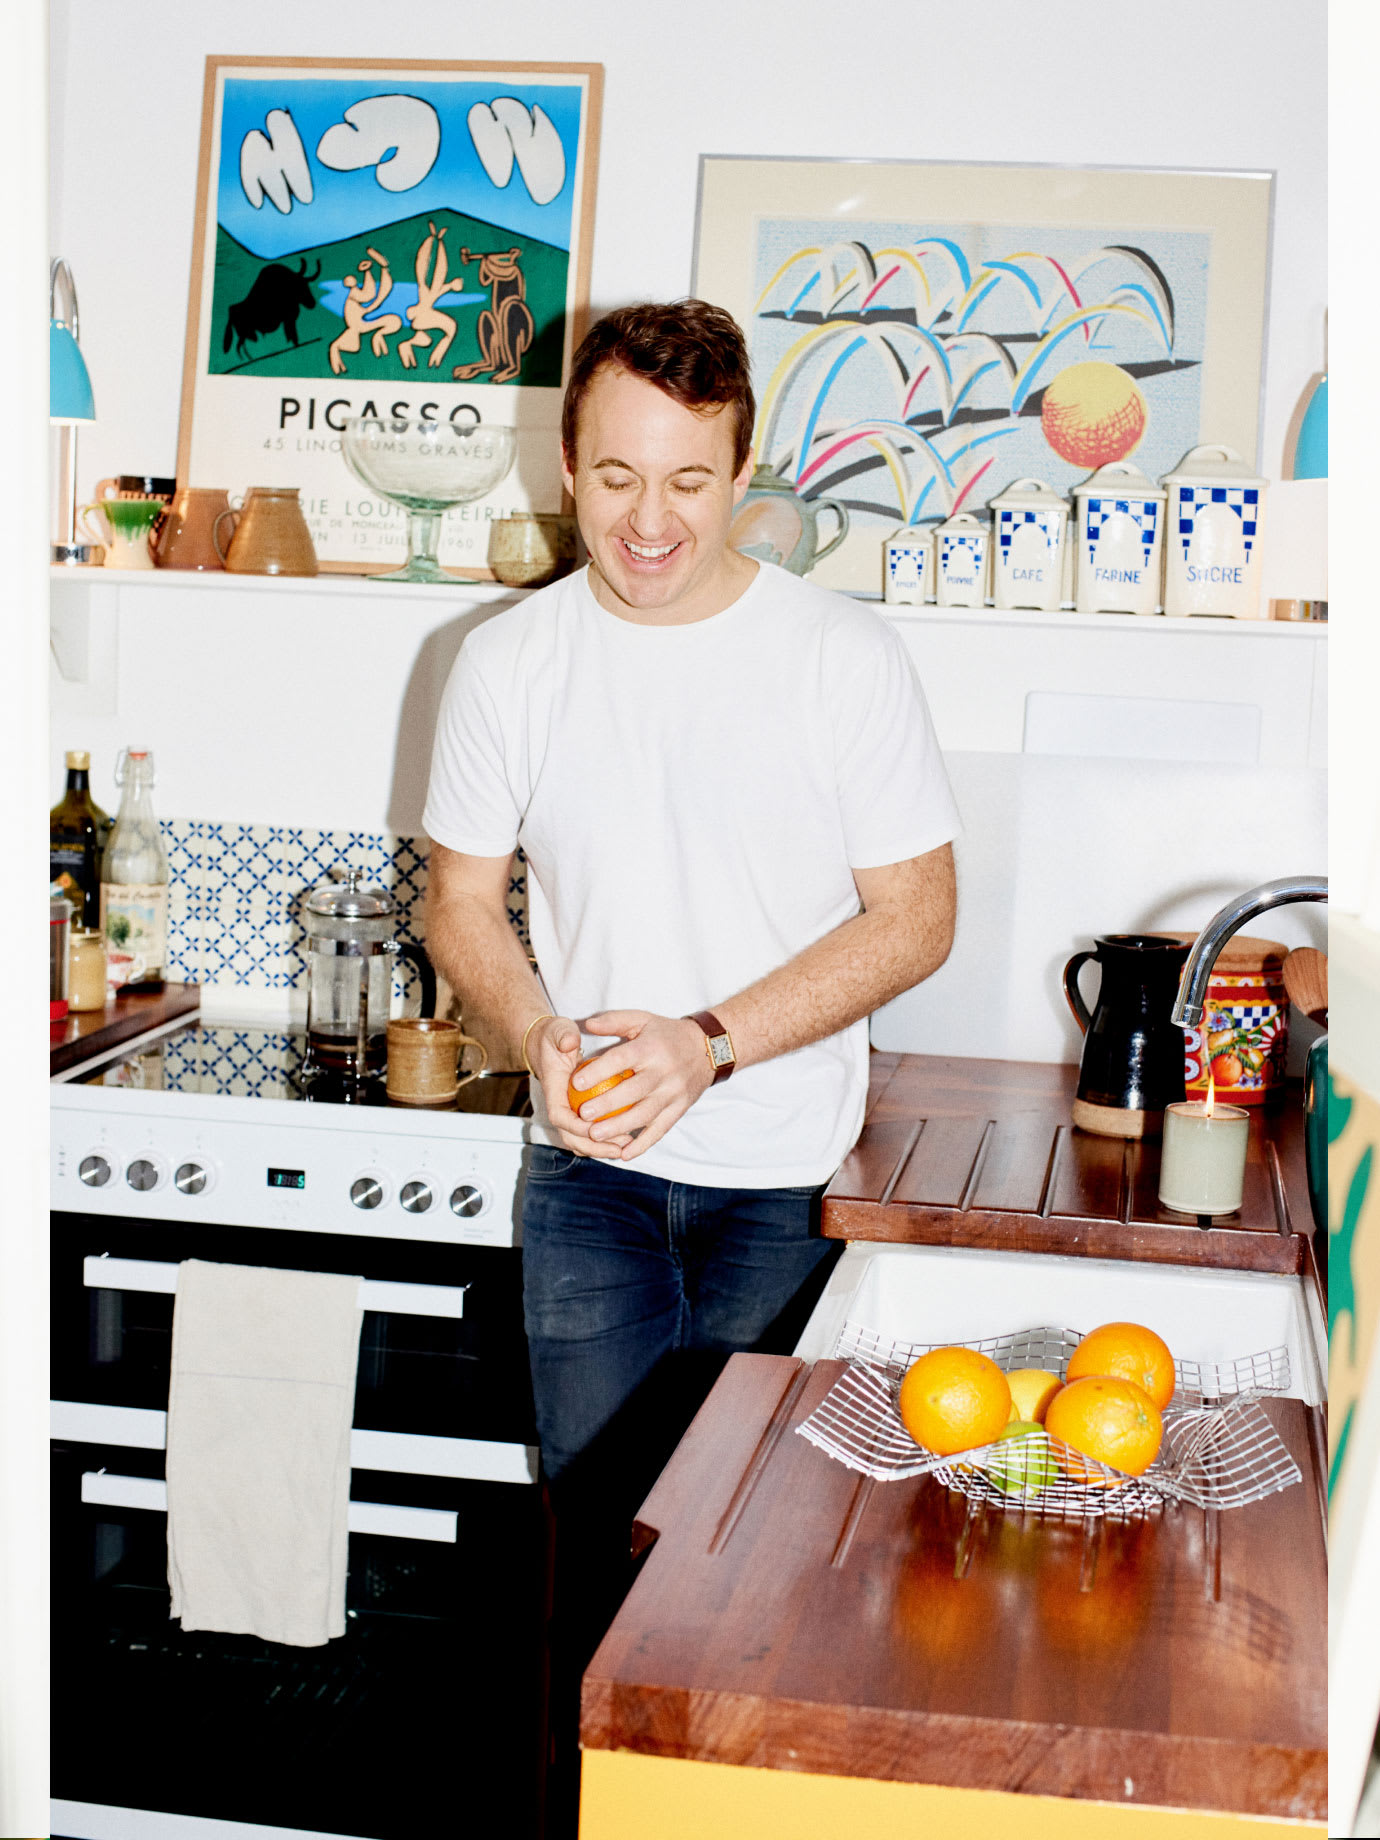 A man laughing in his kitchen.